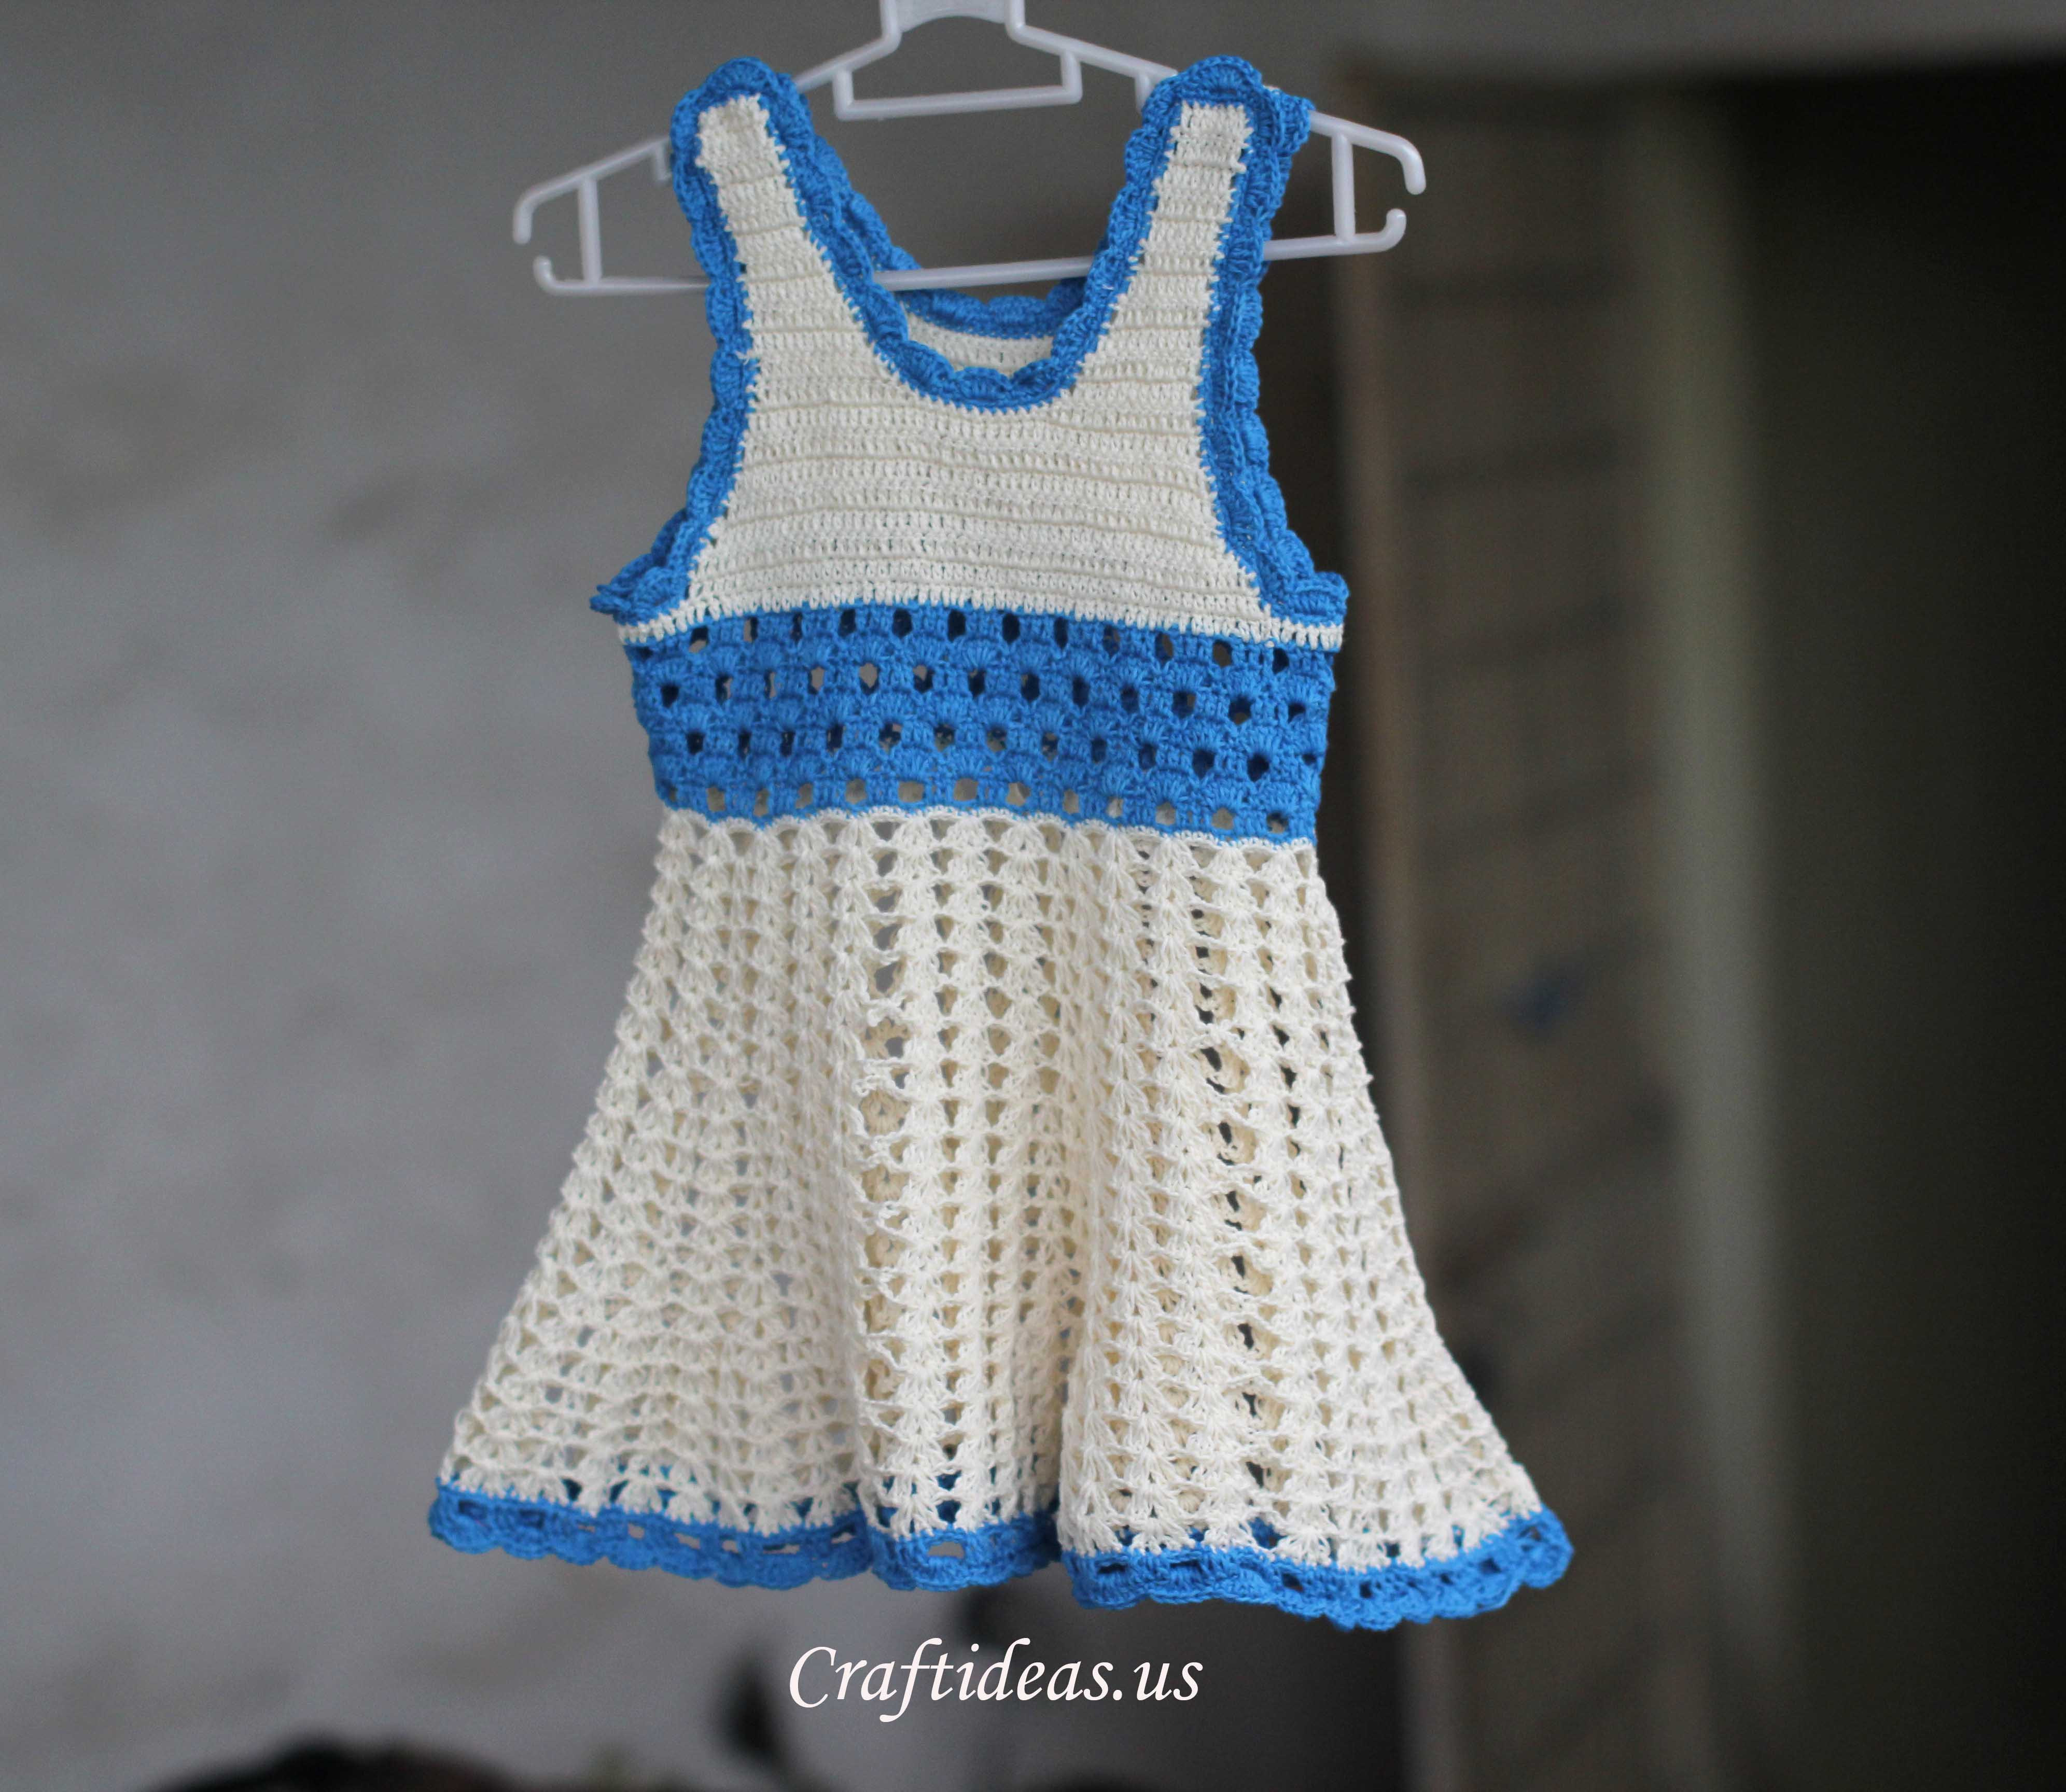 Awesome Crochet Dress for Baby Girls 2 2 5 Years Old Craft Ideas Crochet toddler Dress Of Fresh 40 Ideas Crochet toddler Dress